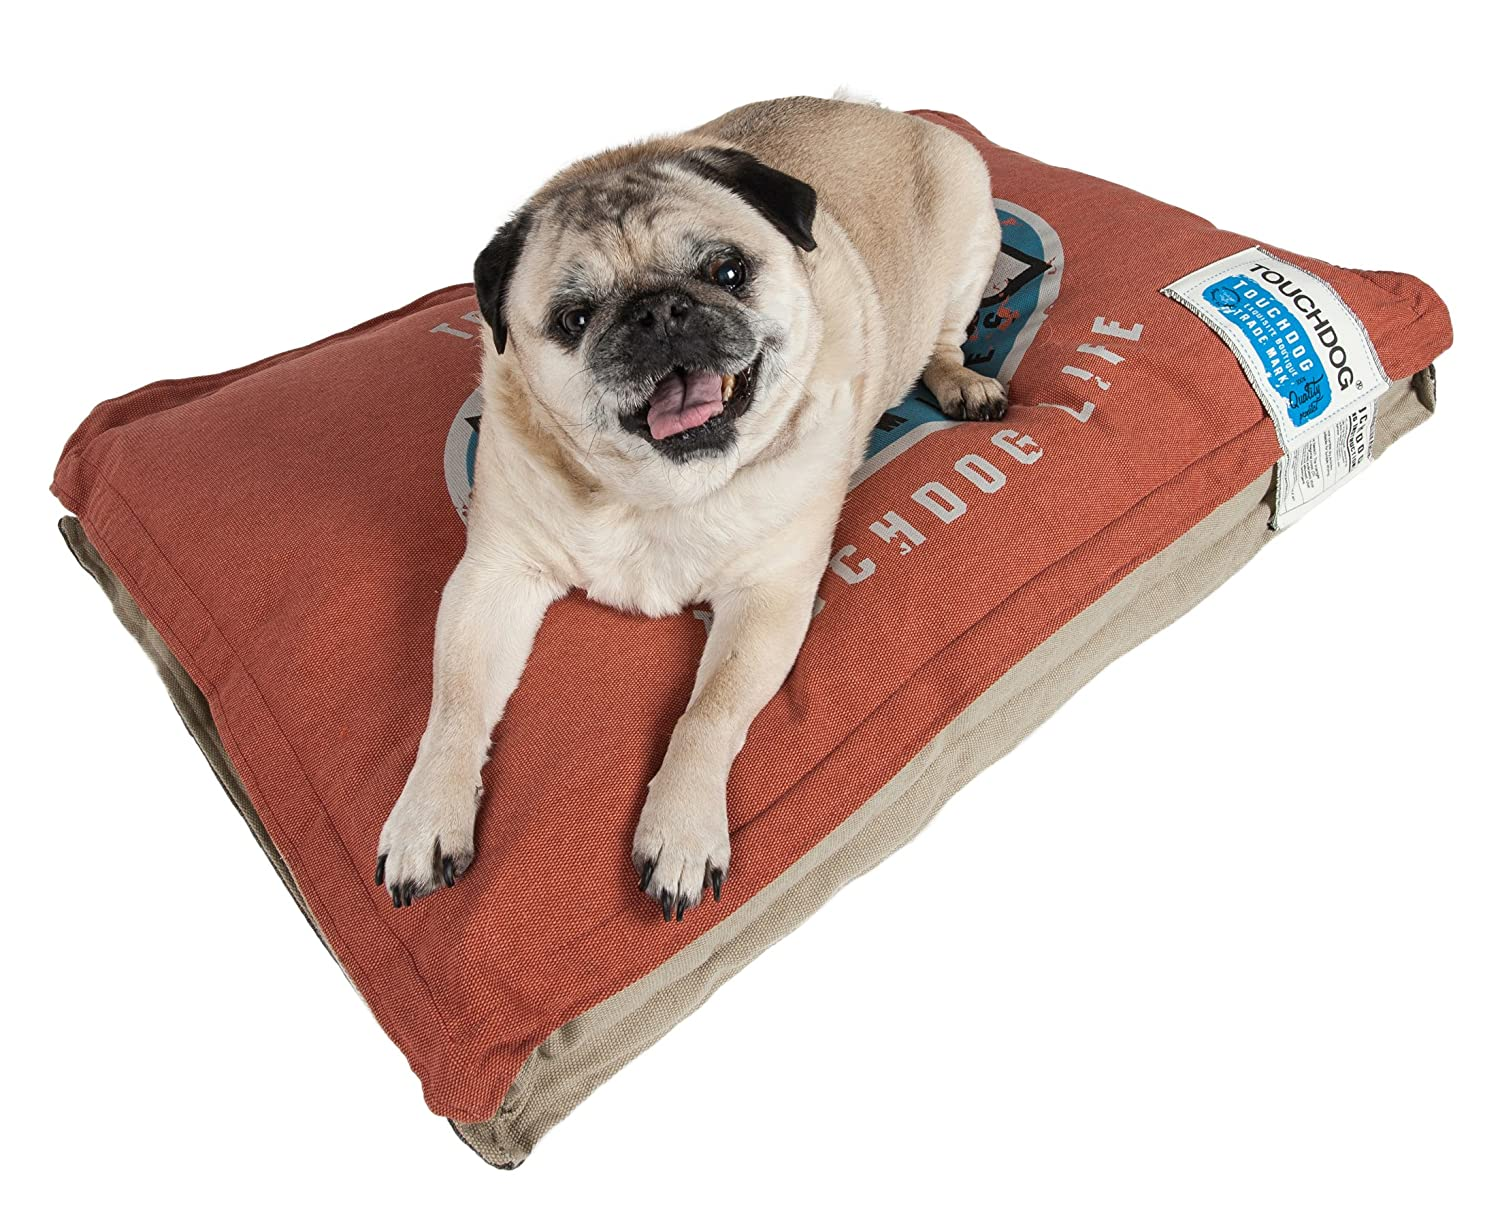 Grenadine, Mocha Brown LG Grenadine, Mocha Brown LG TOUCHDOG 'Shock-Stitched' Sporty Reversible Rectangular Ultra-Thick Pet Dog Bed Mat, Large, Grenadine, Mocha Brown